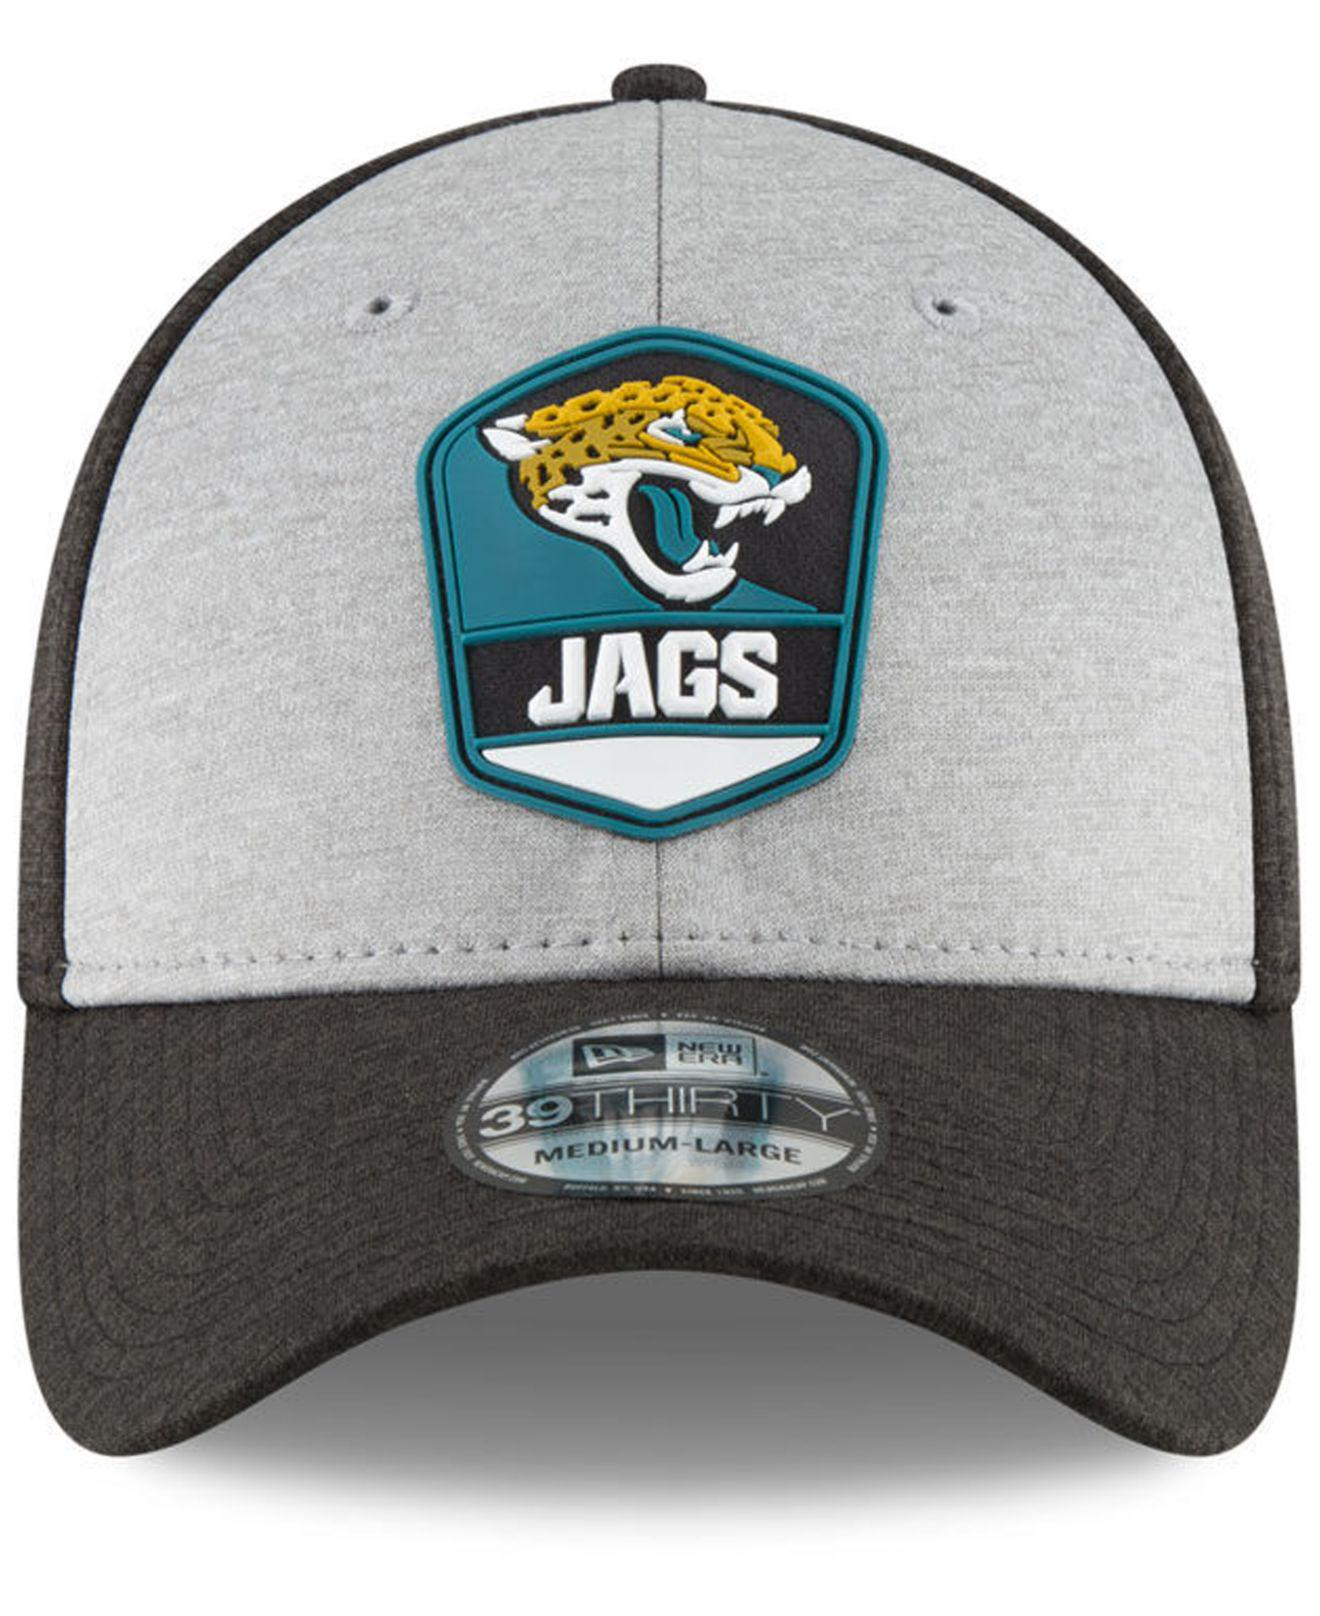 be38f9971 Lyst - KTZ Jacksonville Jaguars On Field Sideline Road 39thirty Stretch  Fitted Cap in Black for Men